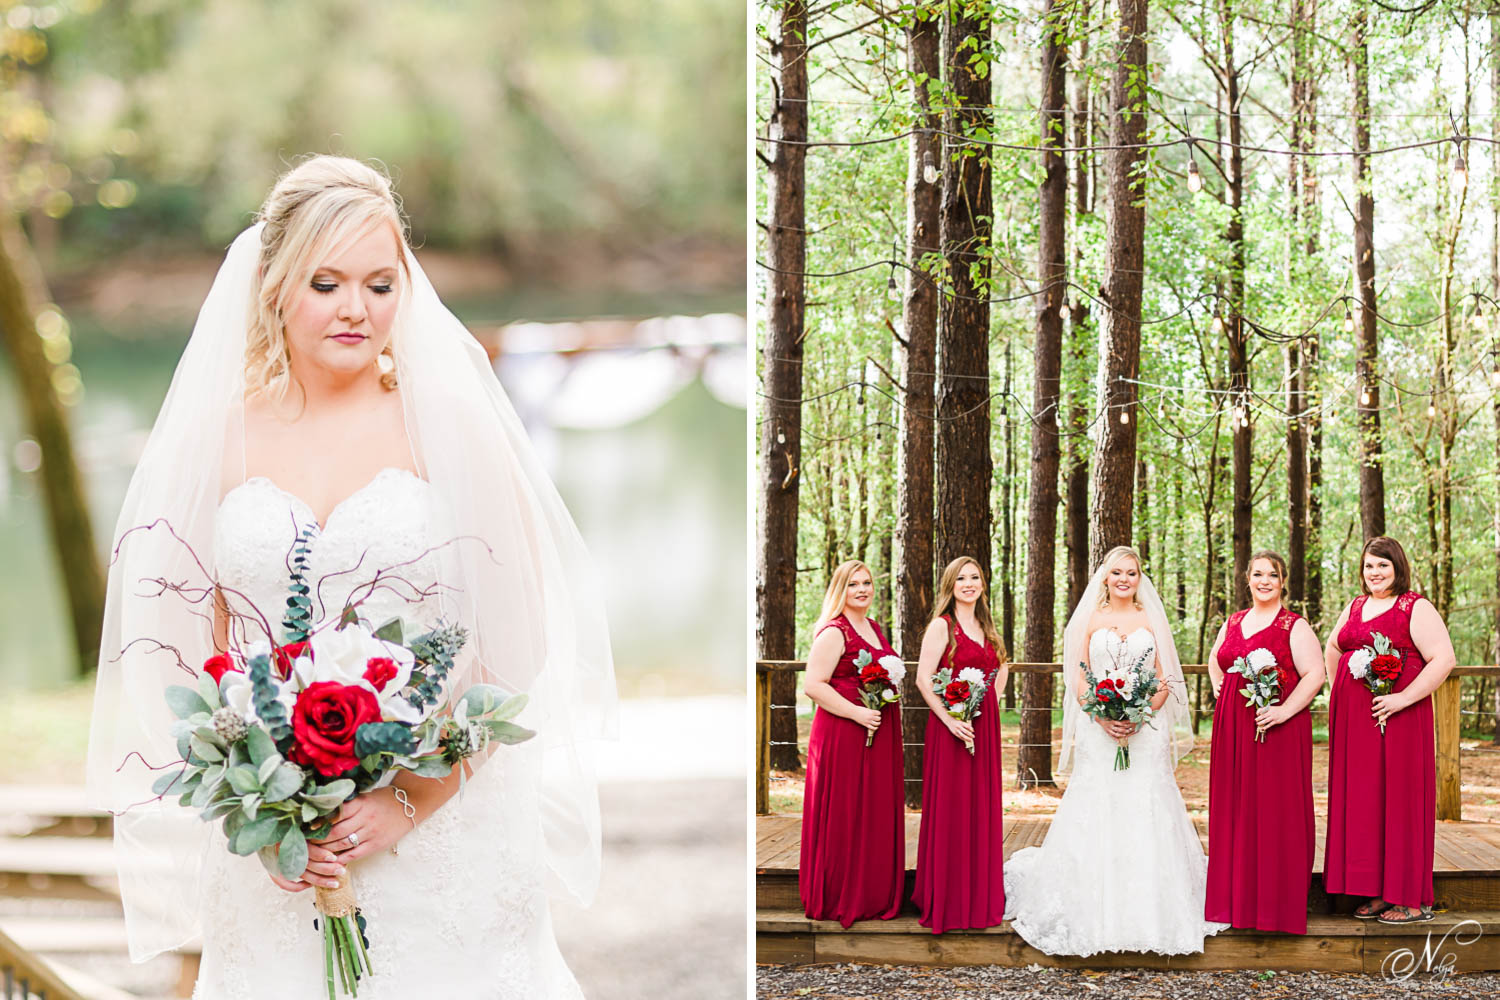 Bride with veil over her shoulders holding her bouquet and looking down over her shoulder at Hiwassee River Weddings in TN. And bridesmaids in cranberry red bridesmaids dresses with tall pines in the background